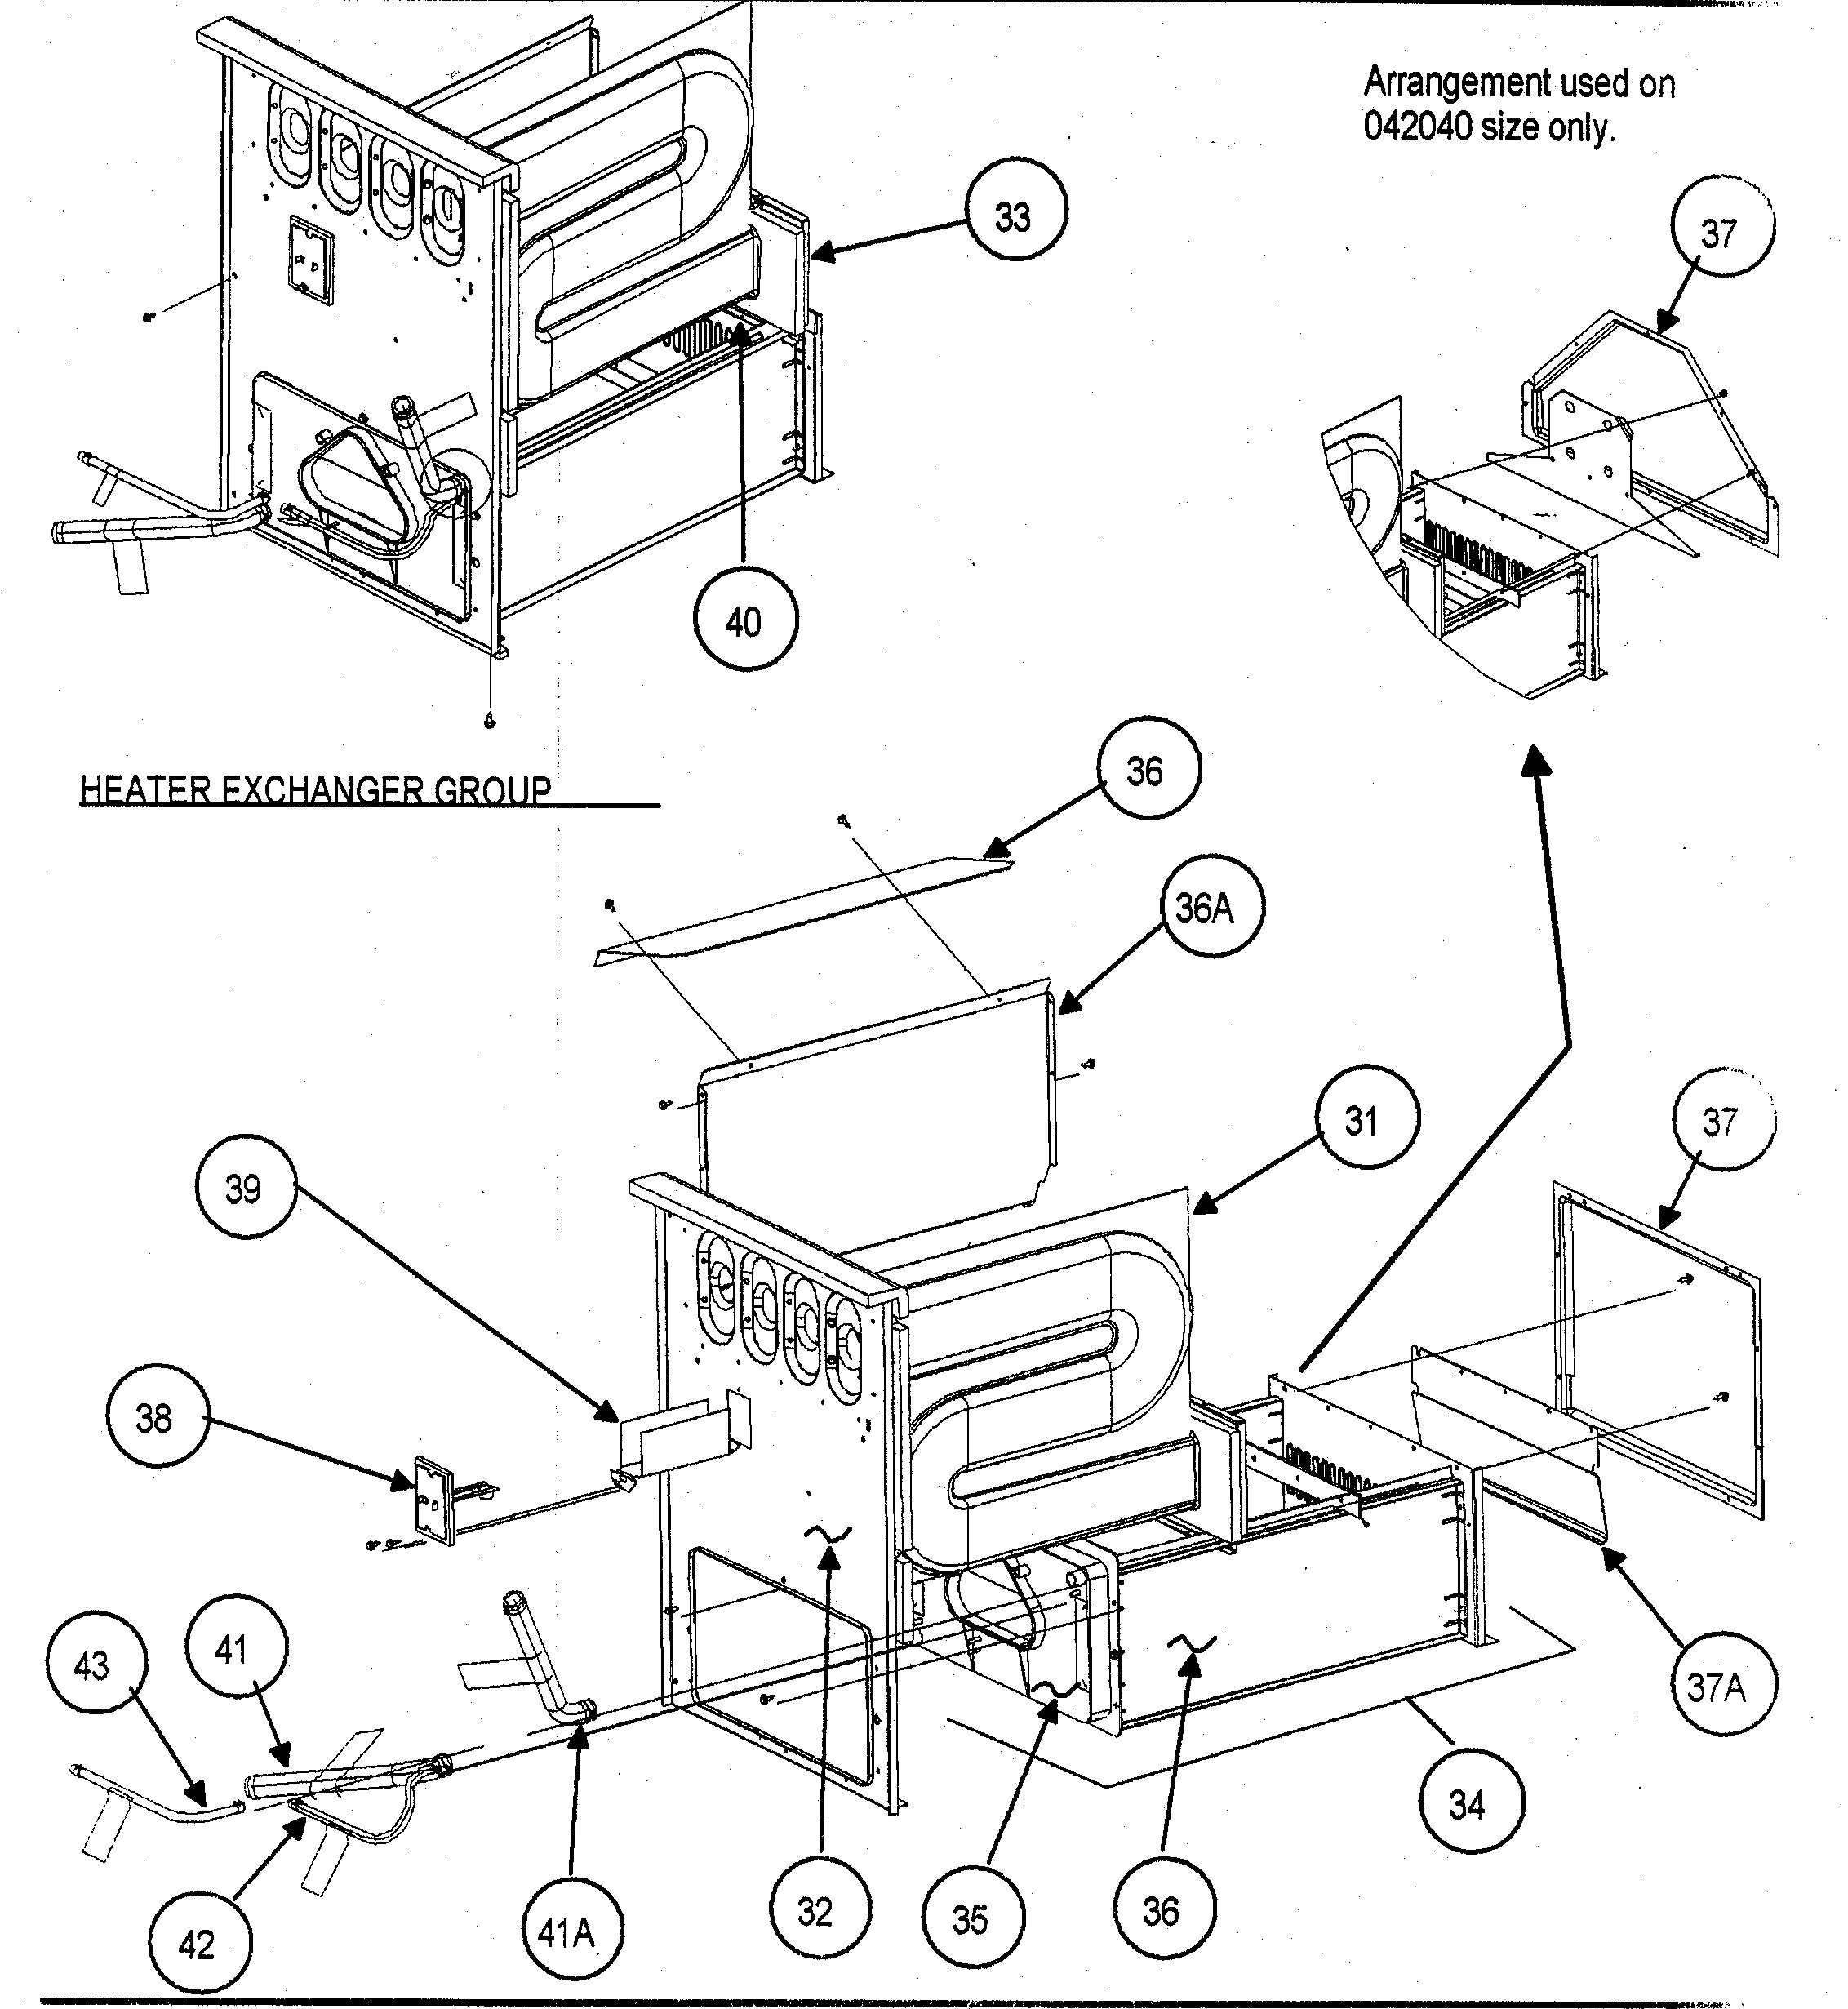 Carrier 58MTA120F10120 heater exchanger group diagram